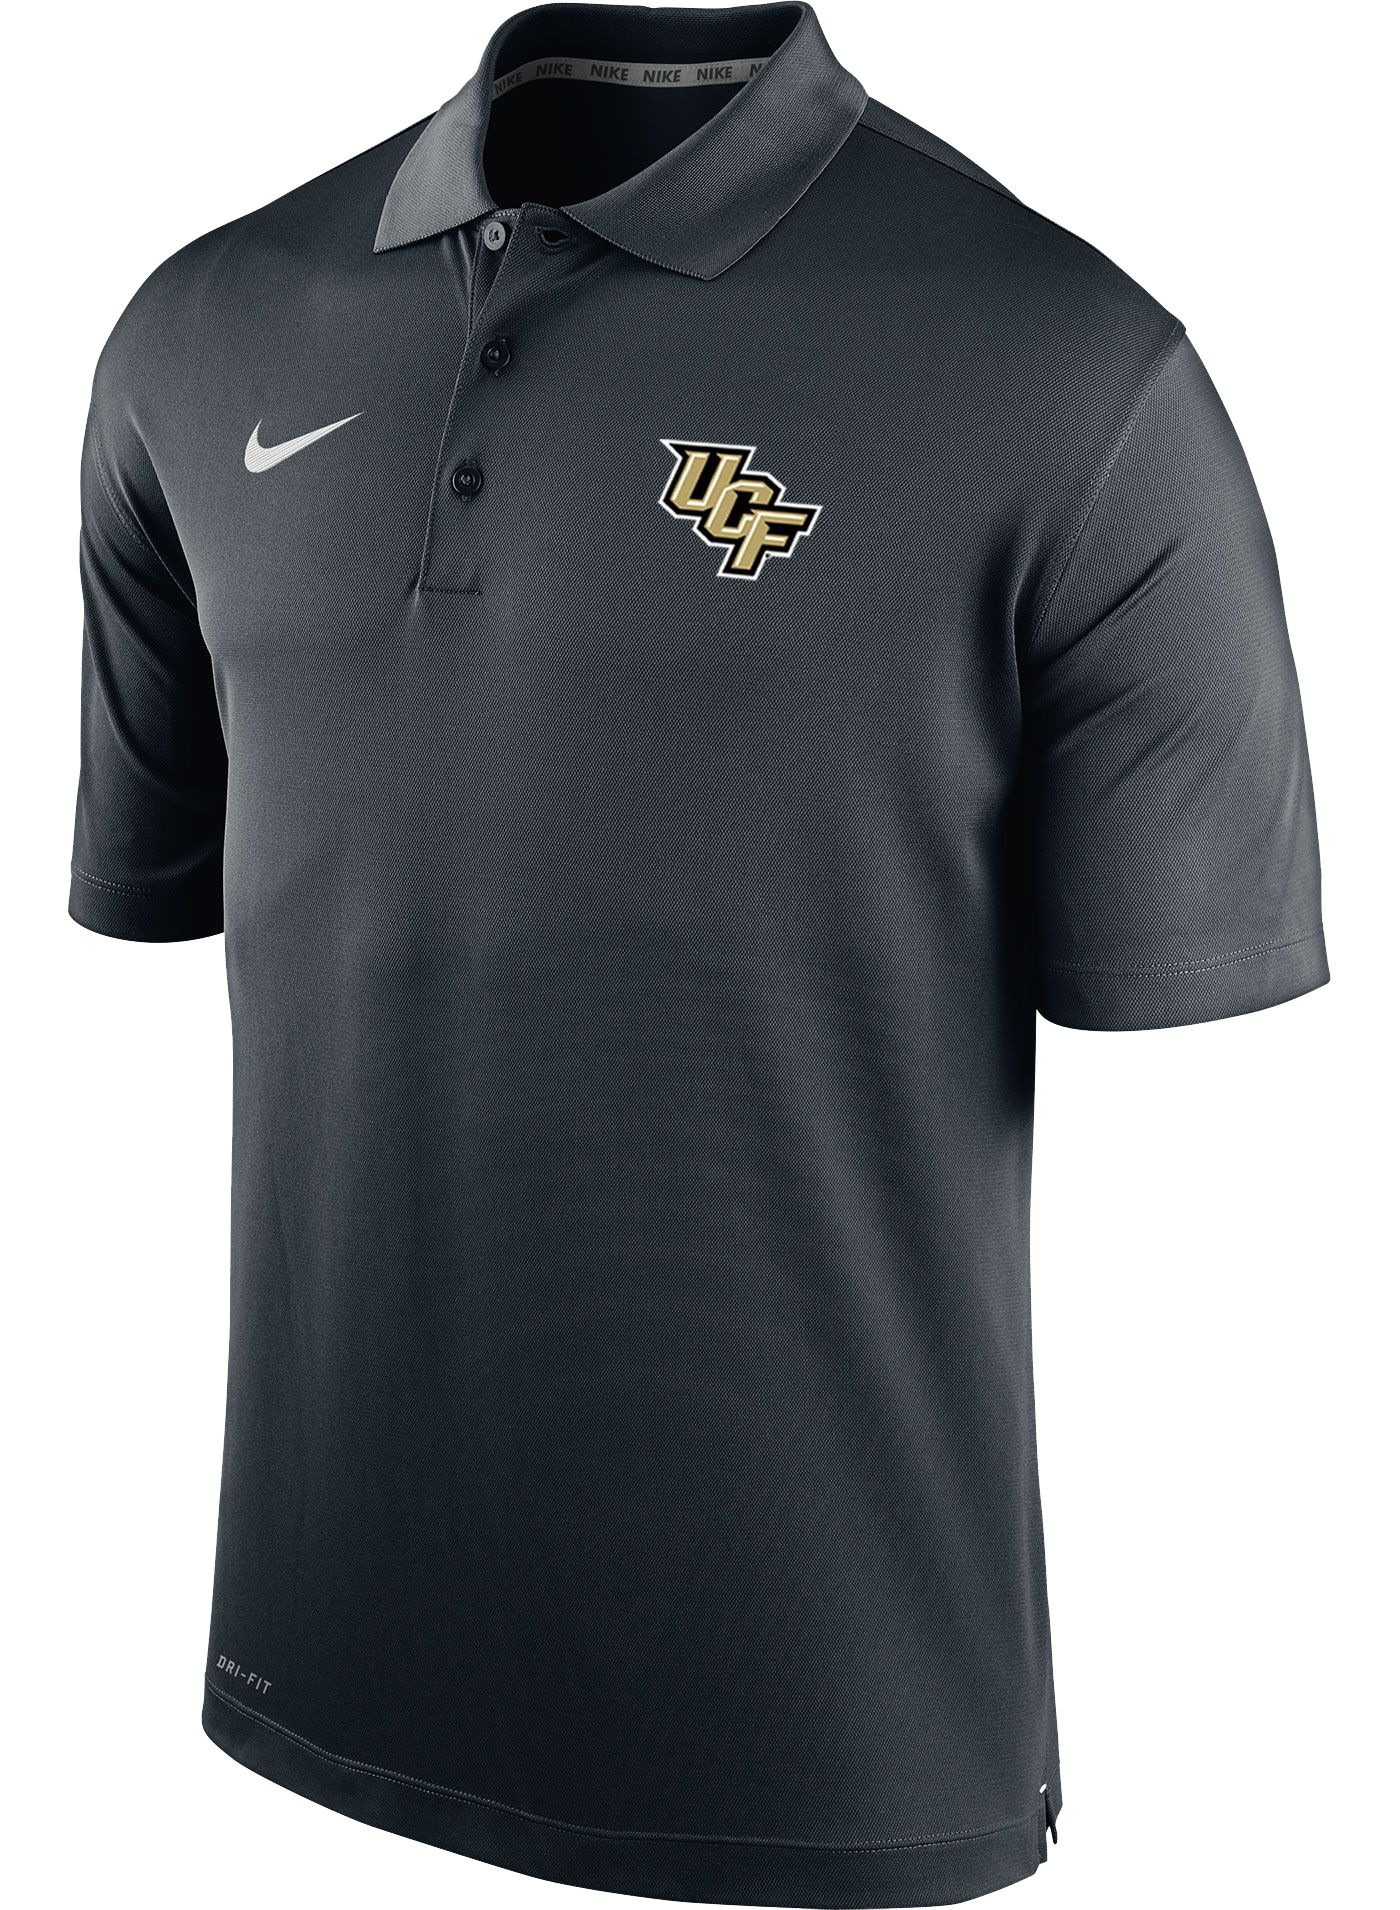 Nike Men's UCF Knights Varsity Black Polo